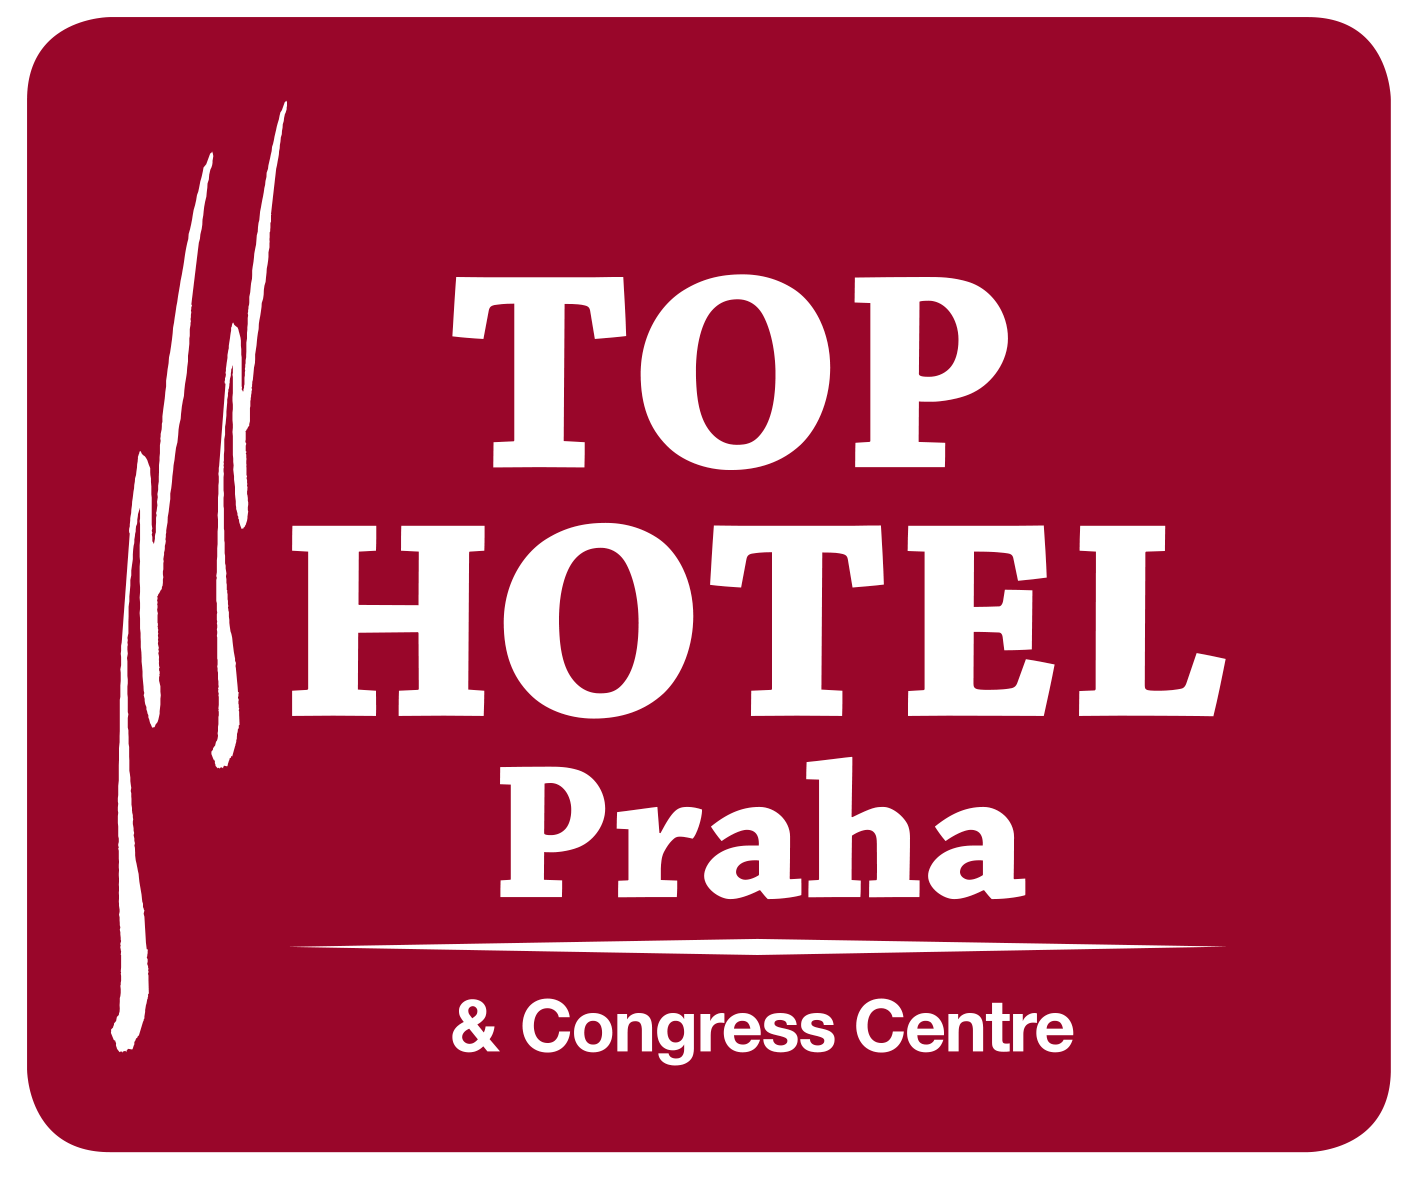 Top Hotels group